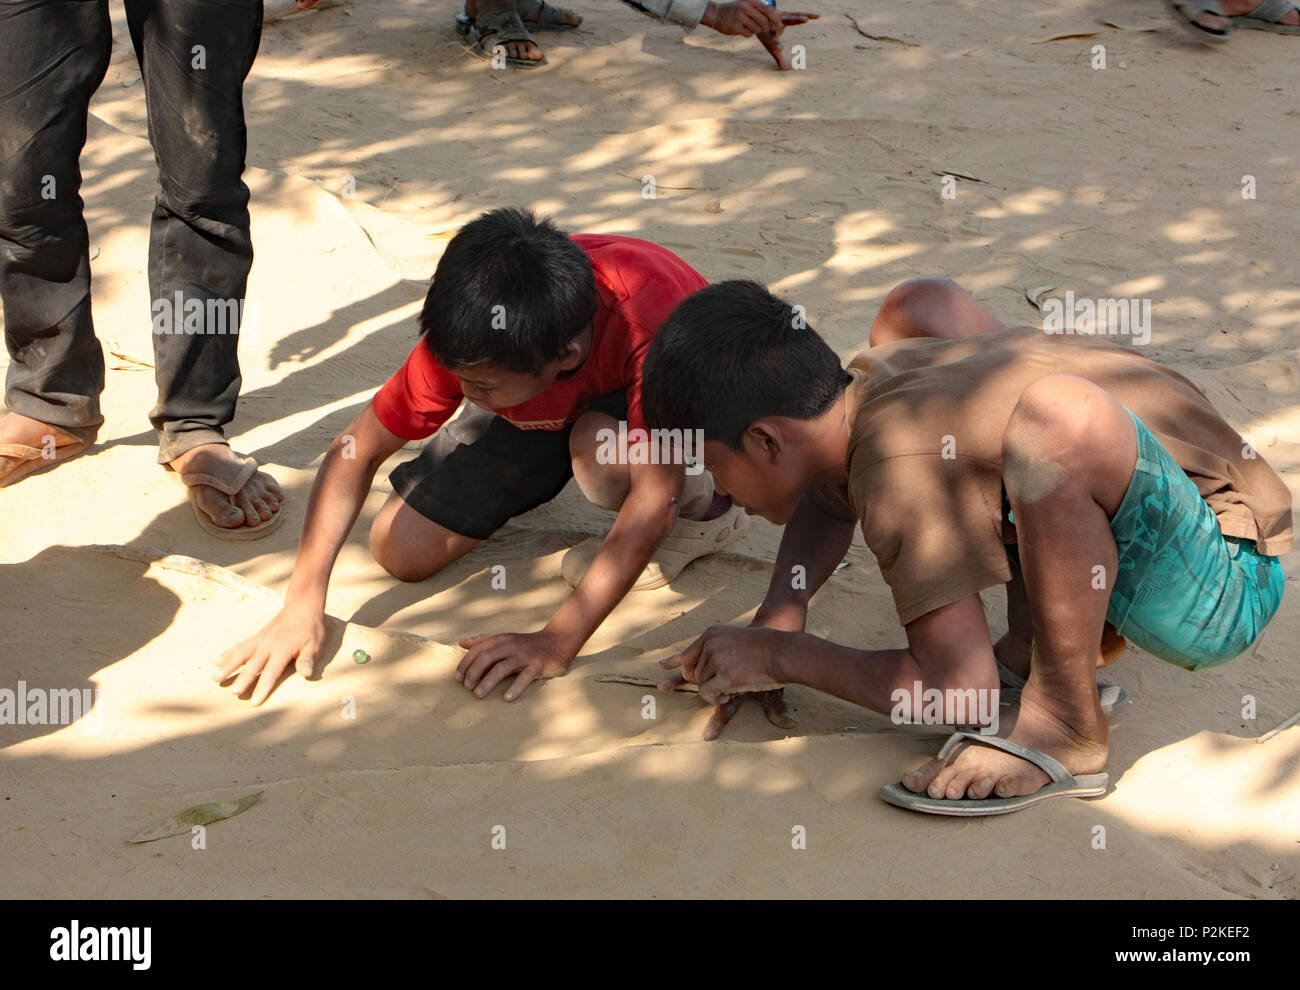 Two Cambodian boys playing the game of Marbles, with small glass balls, on the rough sandy earth of Ream School playground. - Stock Image